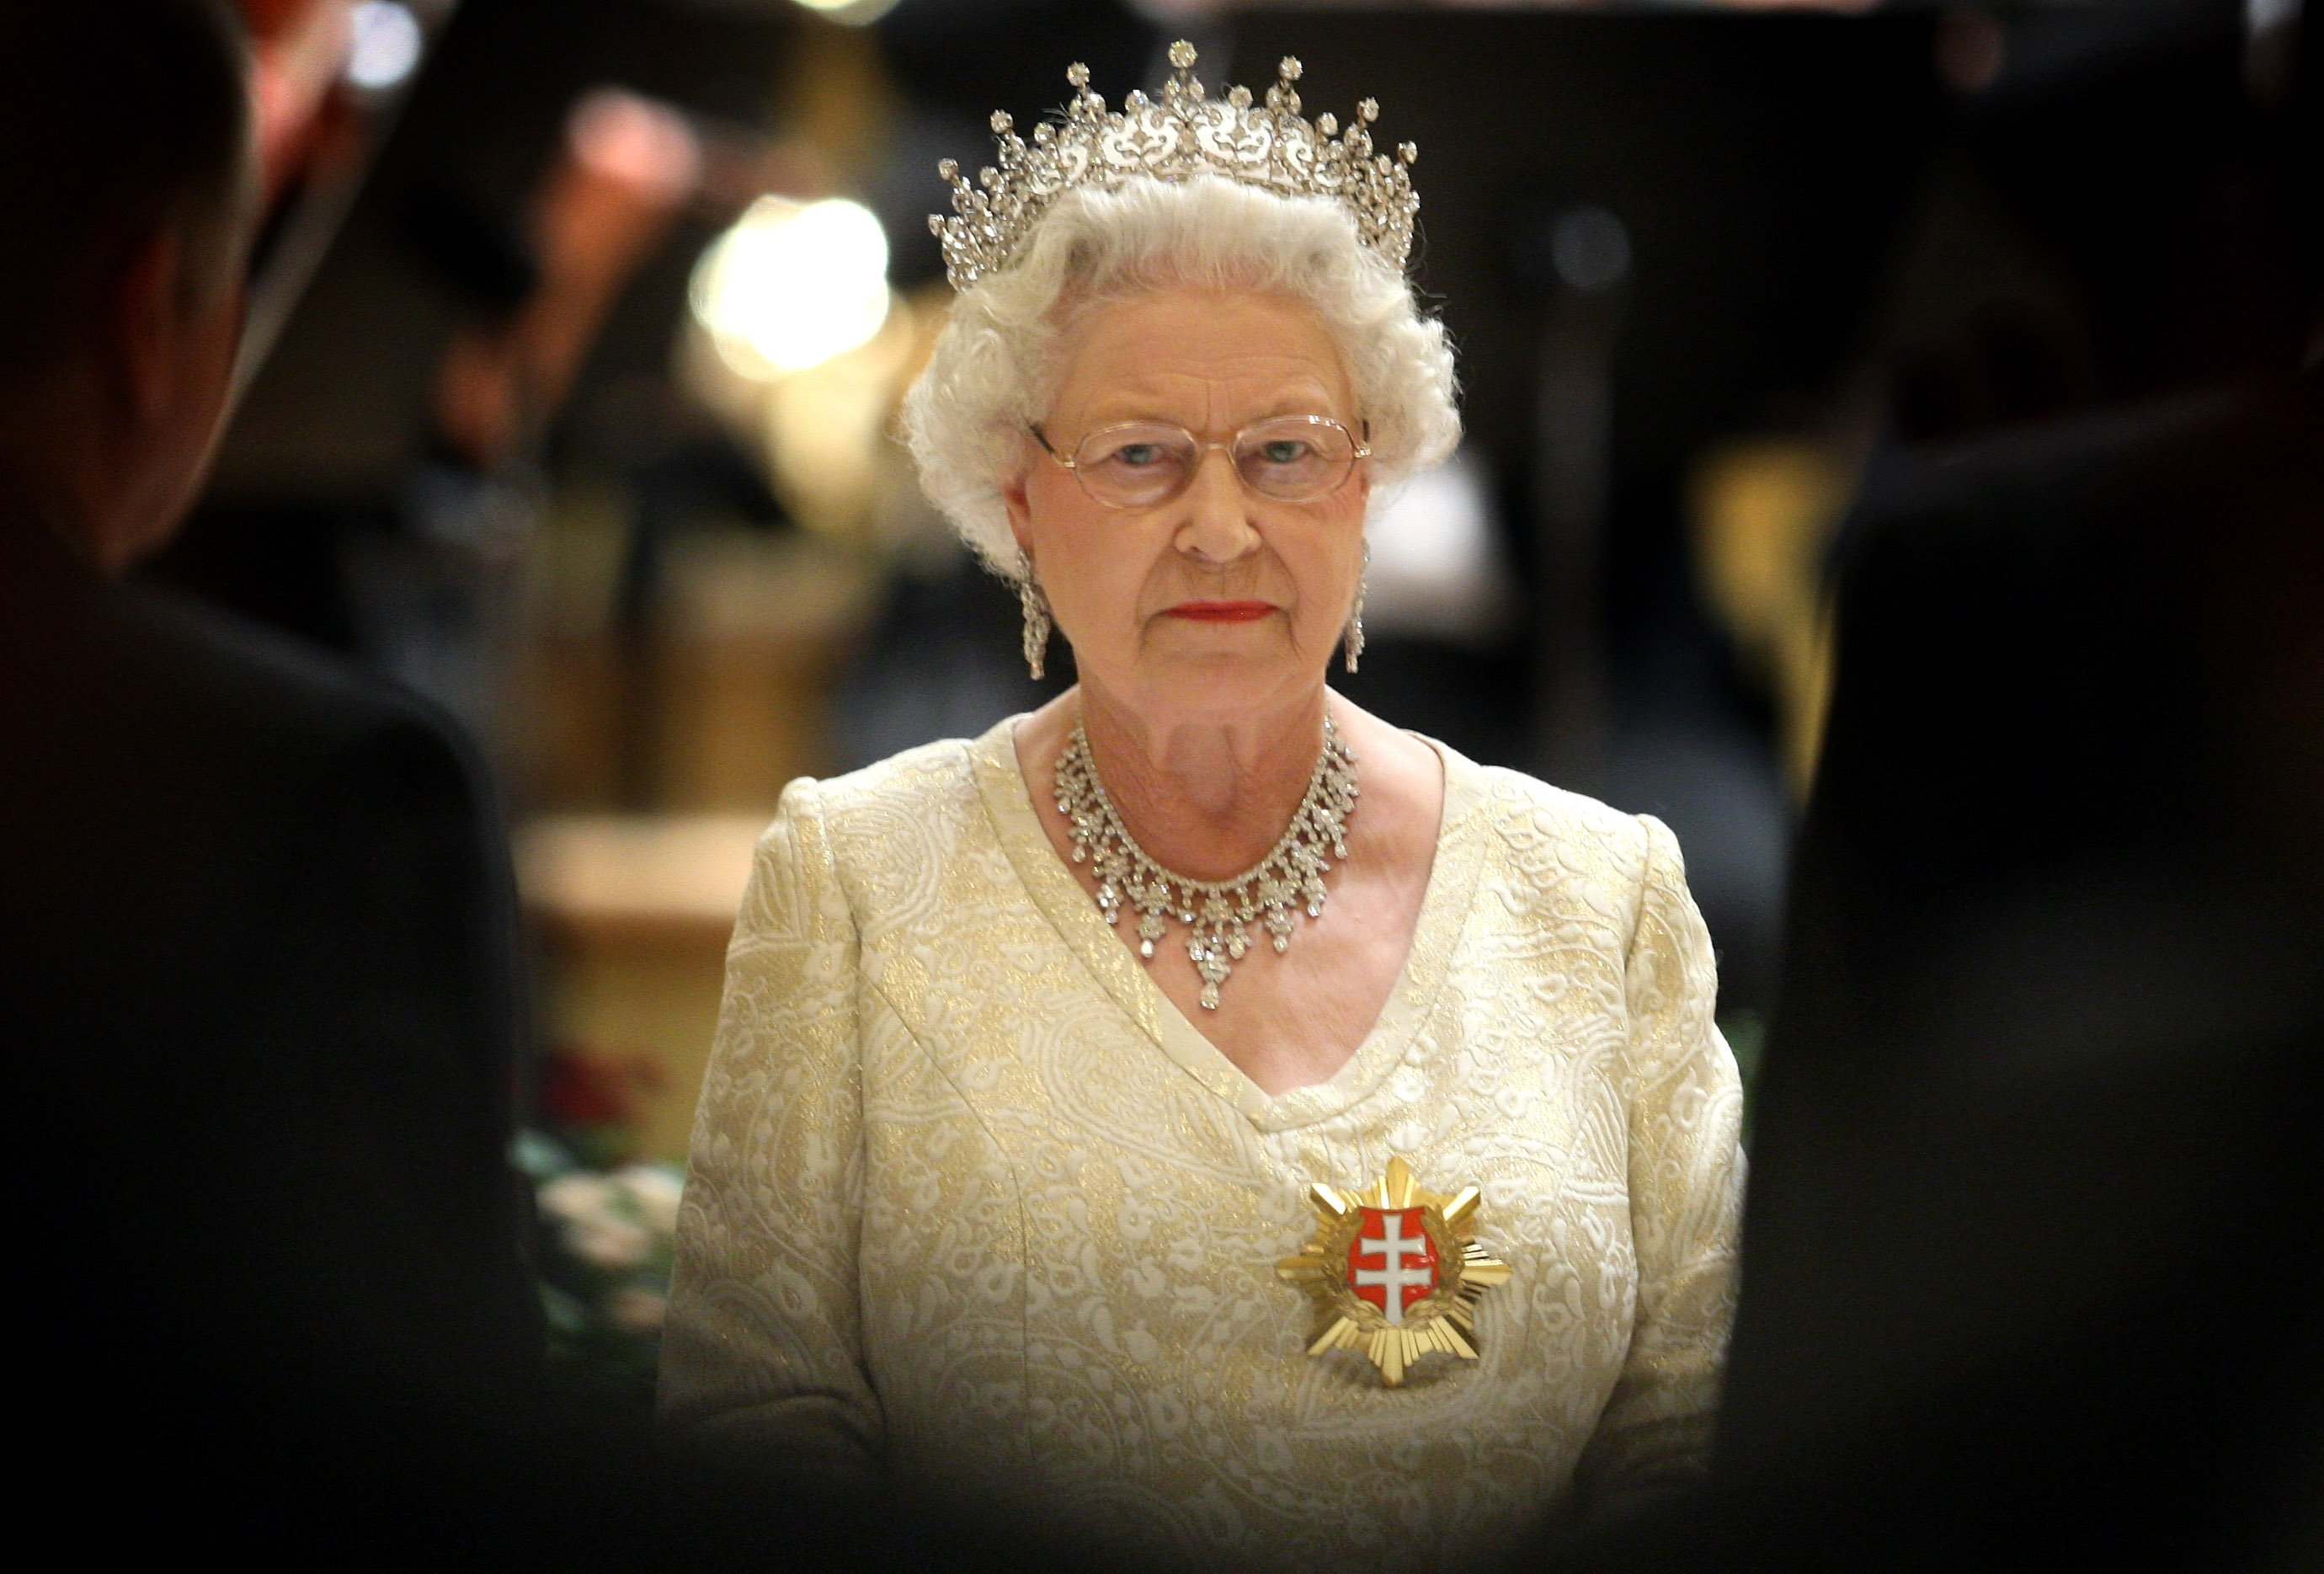 Queen Elizabeth II attends a State Banquet at the Philharmonic Hall on the first day of a tour of Slovakia on October 23, 2008 in Bratislava, Slovakia. | Photo: GettyImages